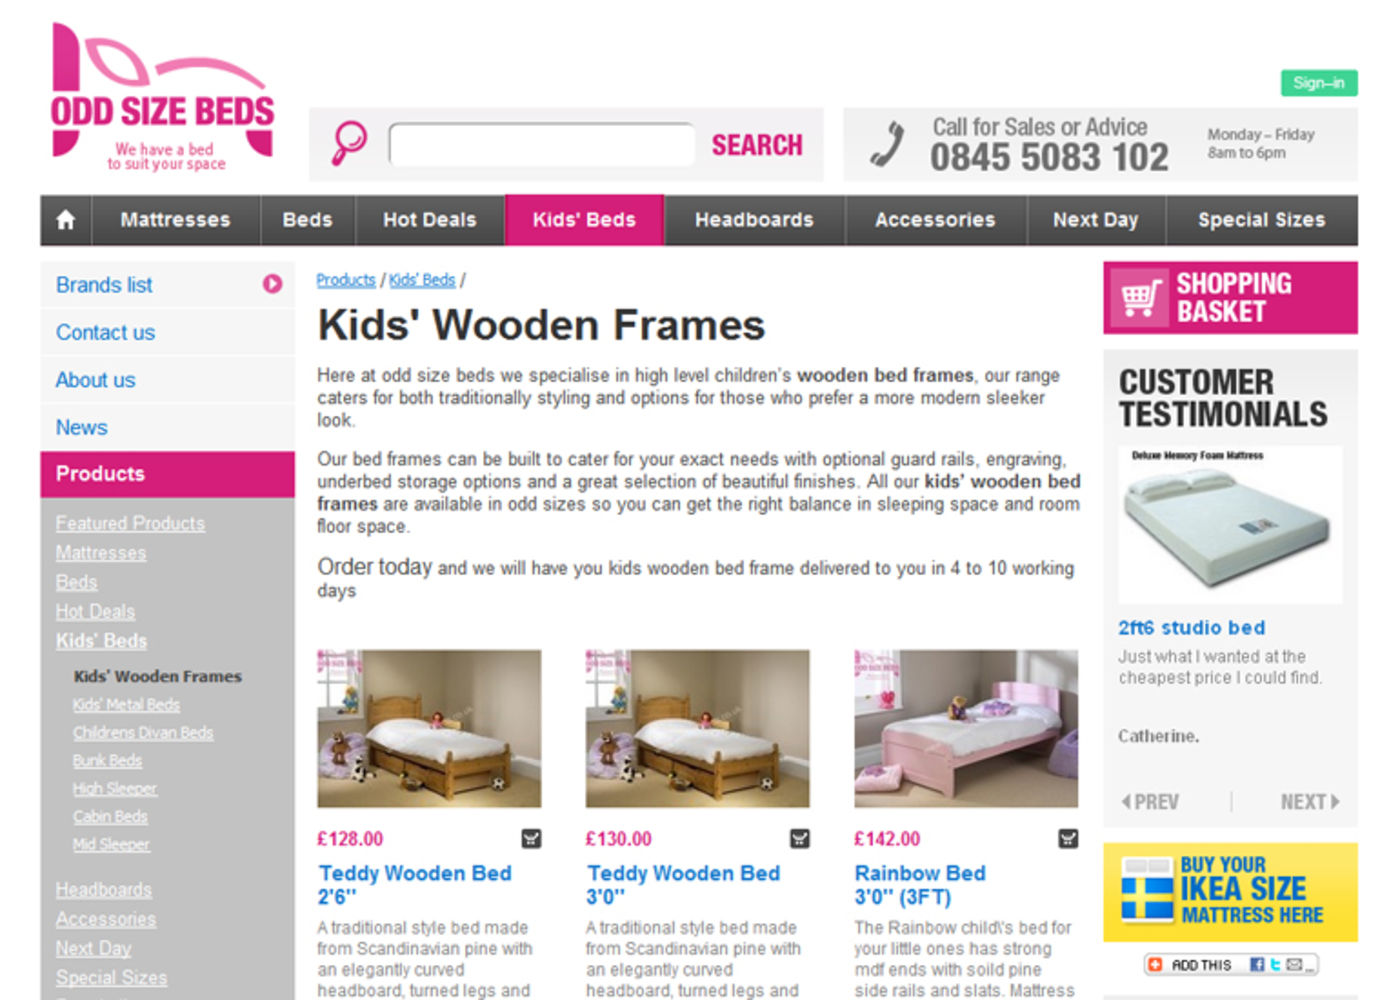 Odd Size Beds Products